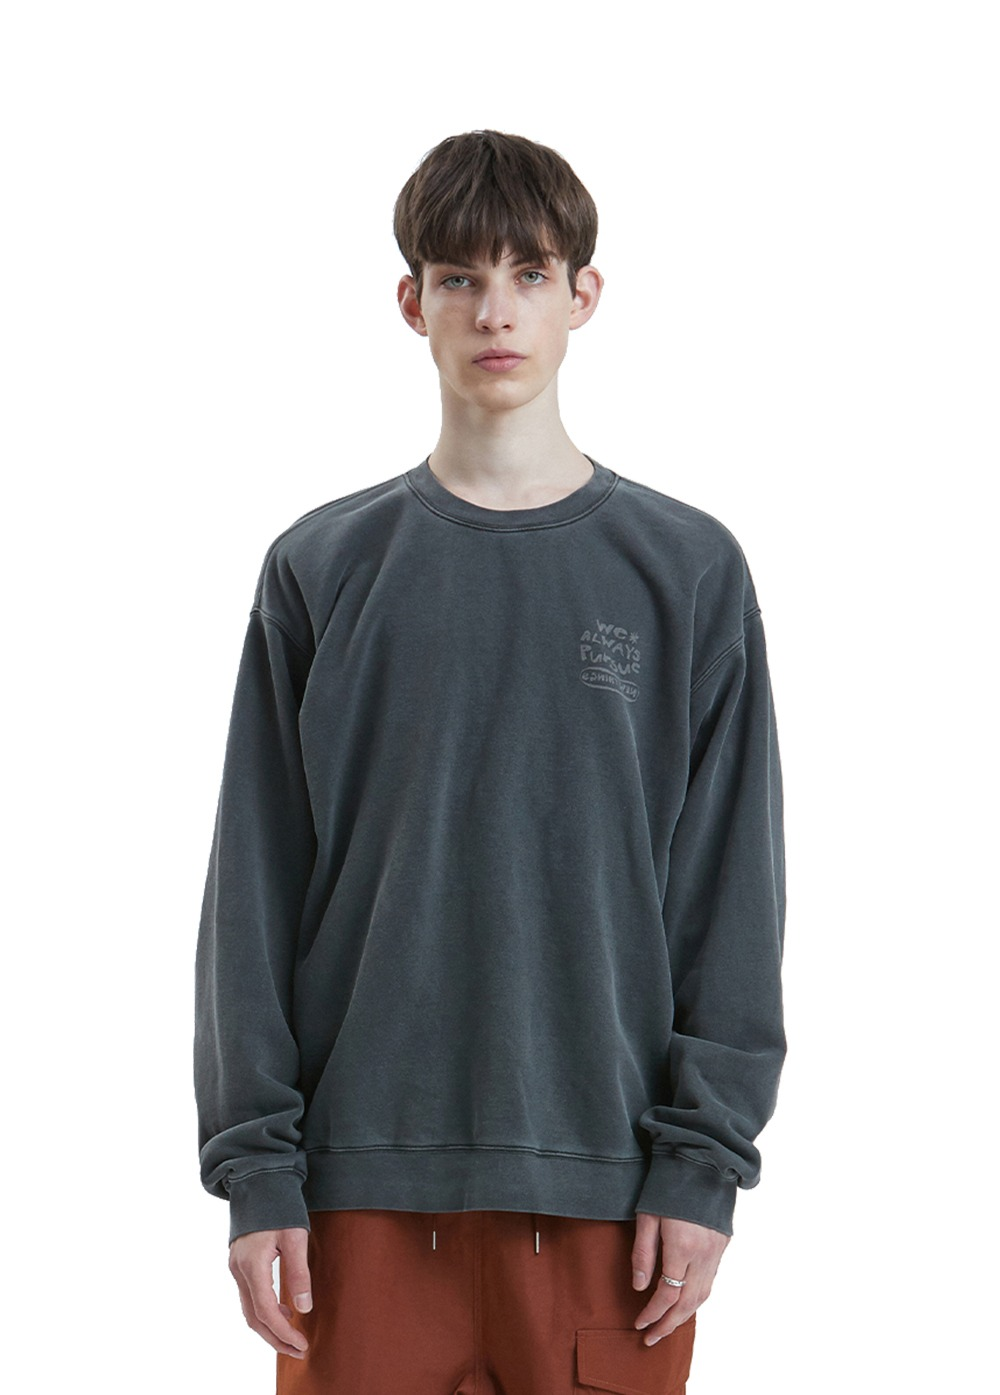 LIFUL P-DYED HANDWRITTEN SWEATSHIRT black